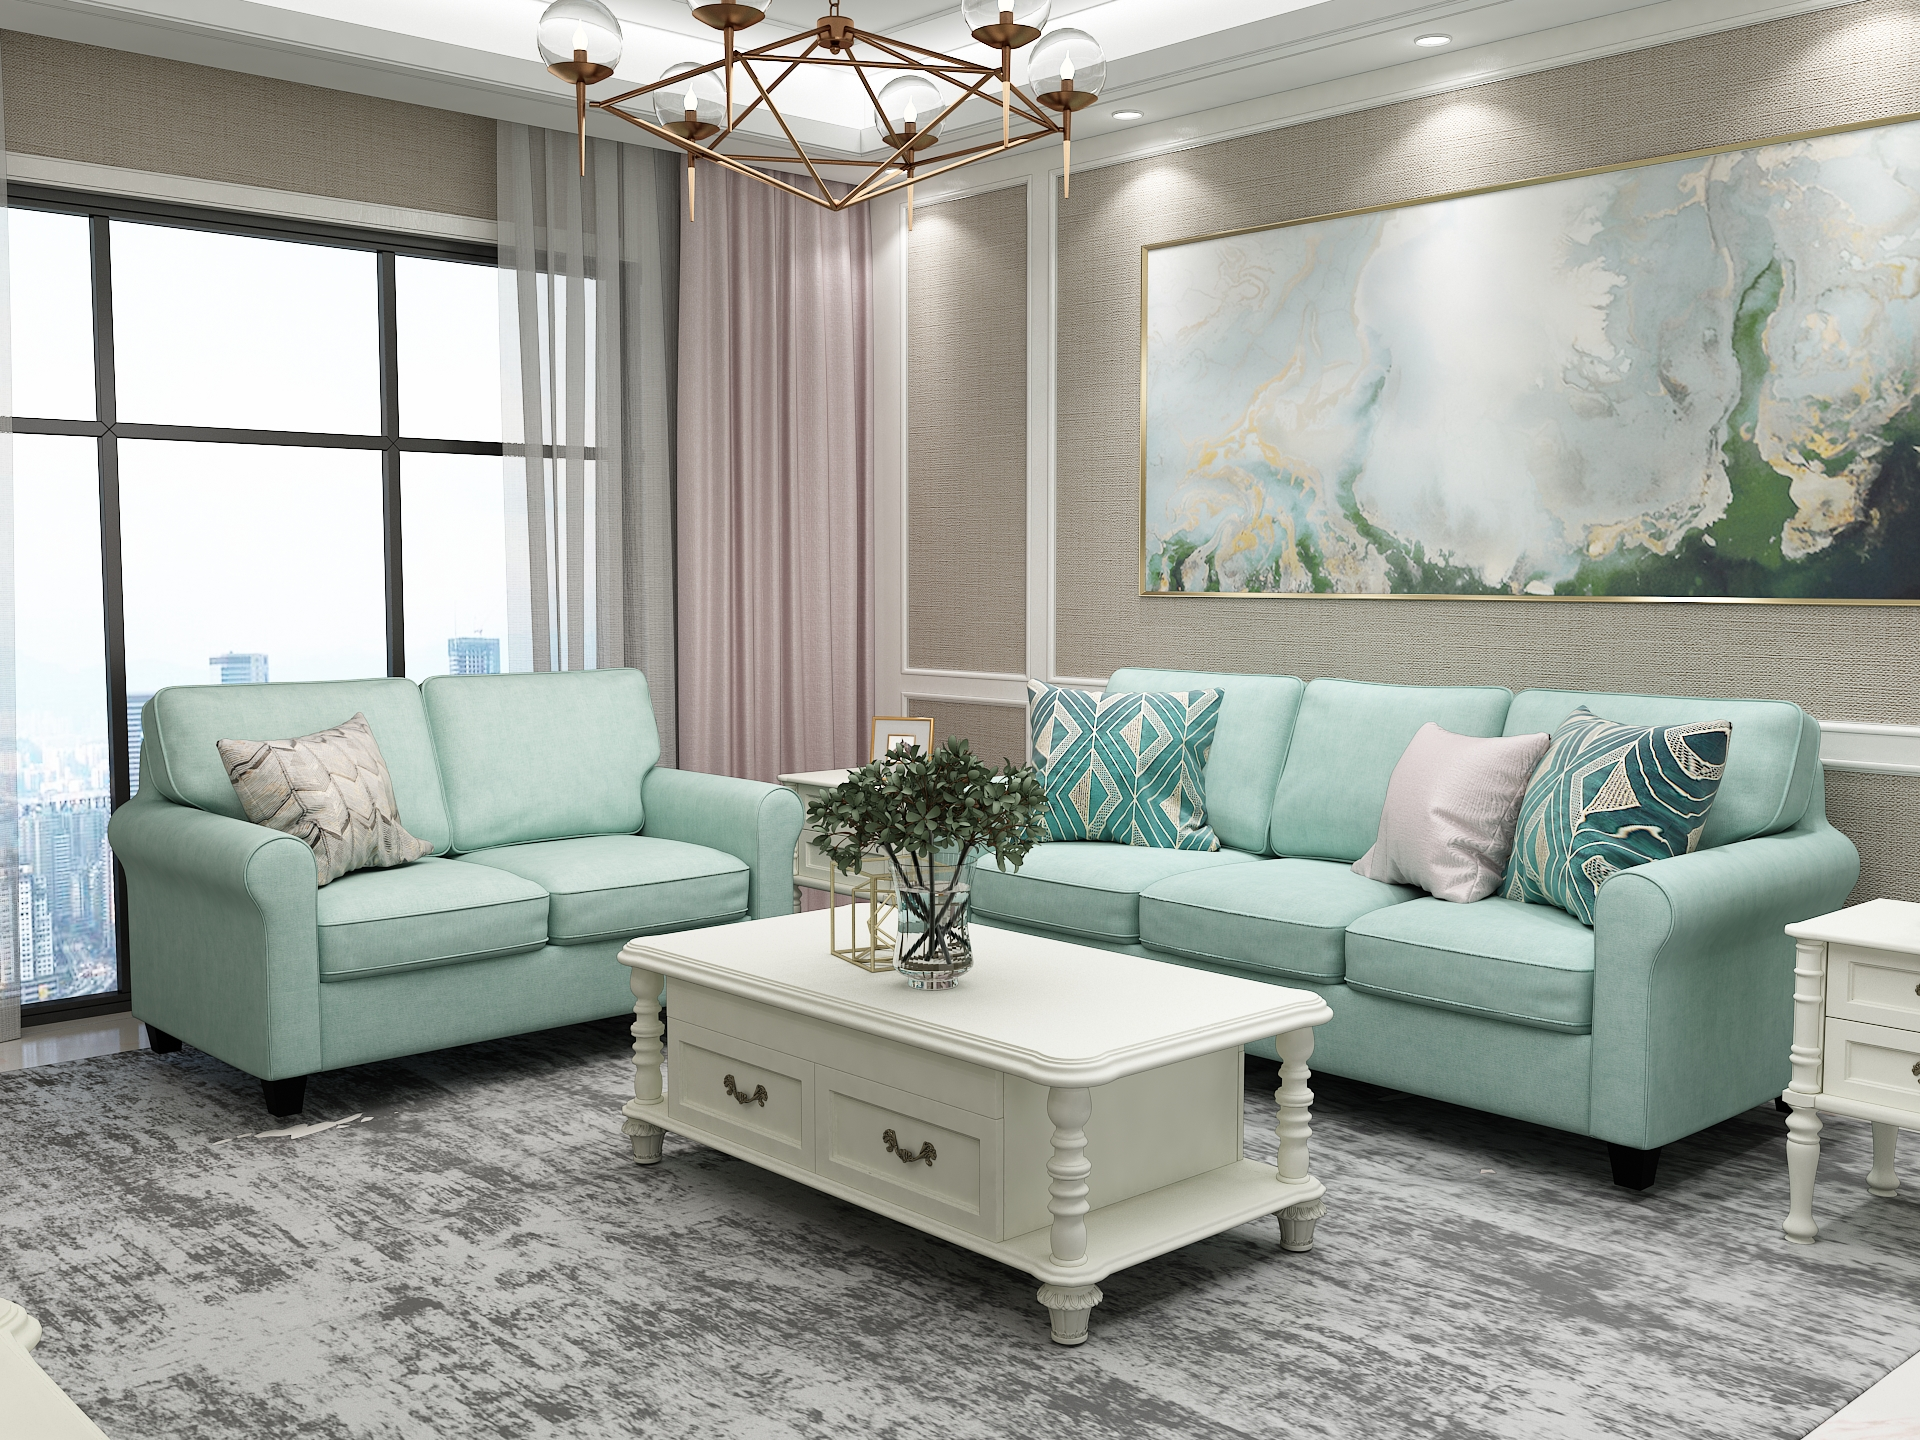 Queenshome Modern Wooden Sofa Cama Design Living Room Funeral Furniture Fabric 3 Seat Seater Recliner Seats Turquoise Sofa Set Queens Home